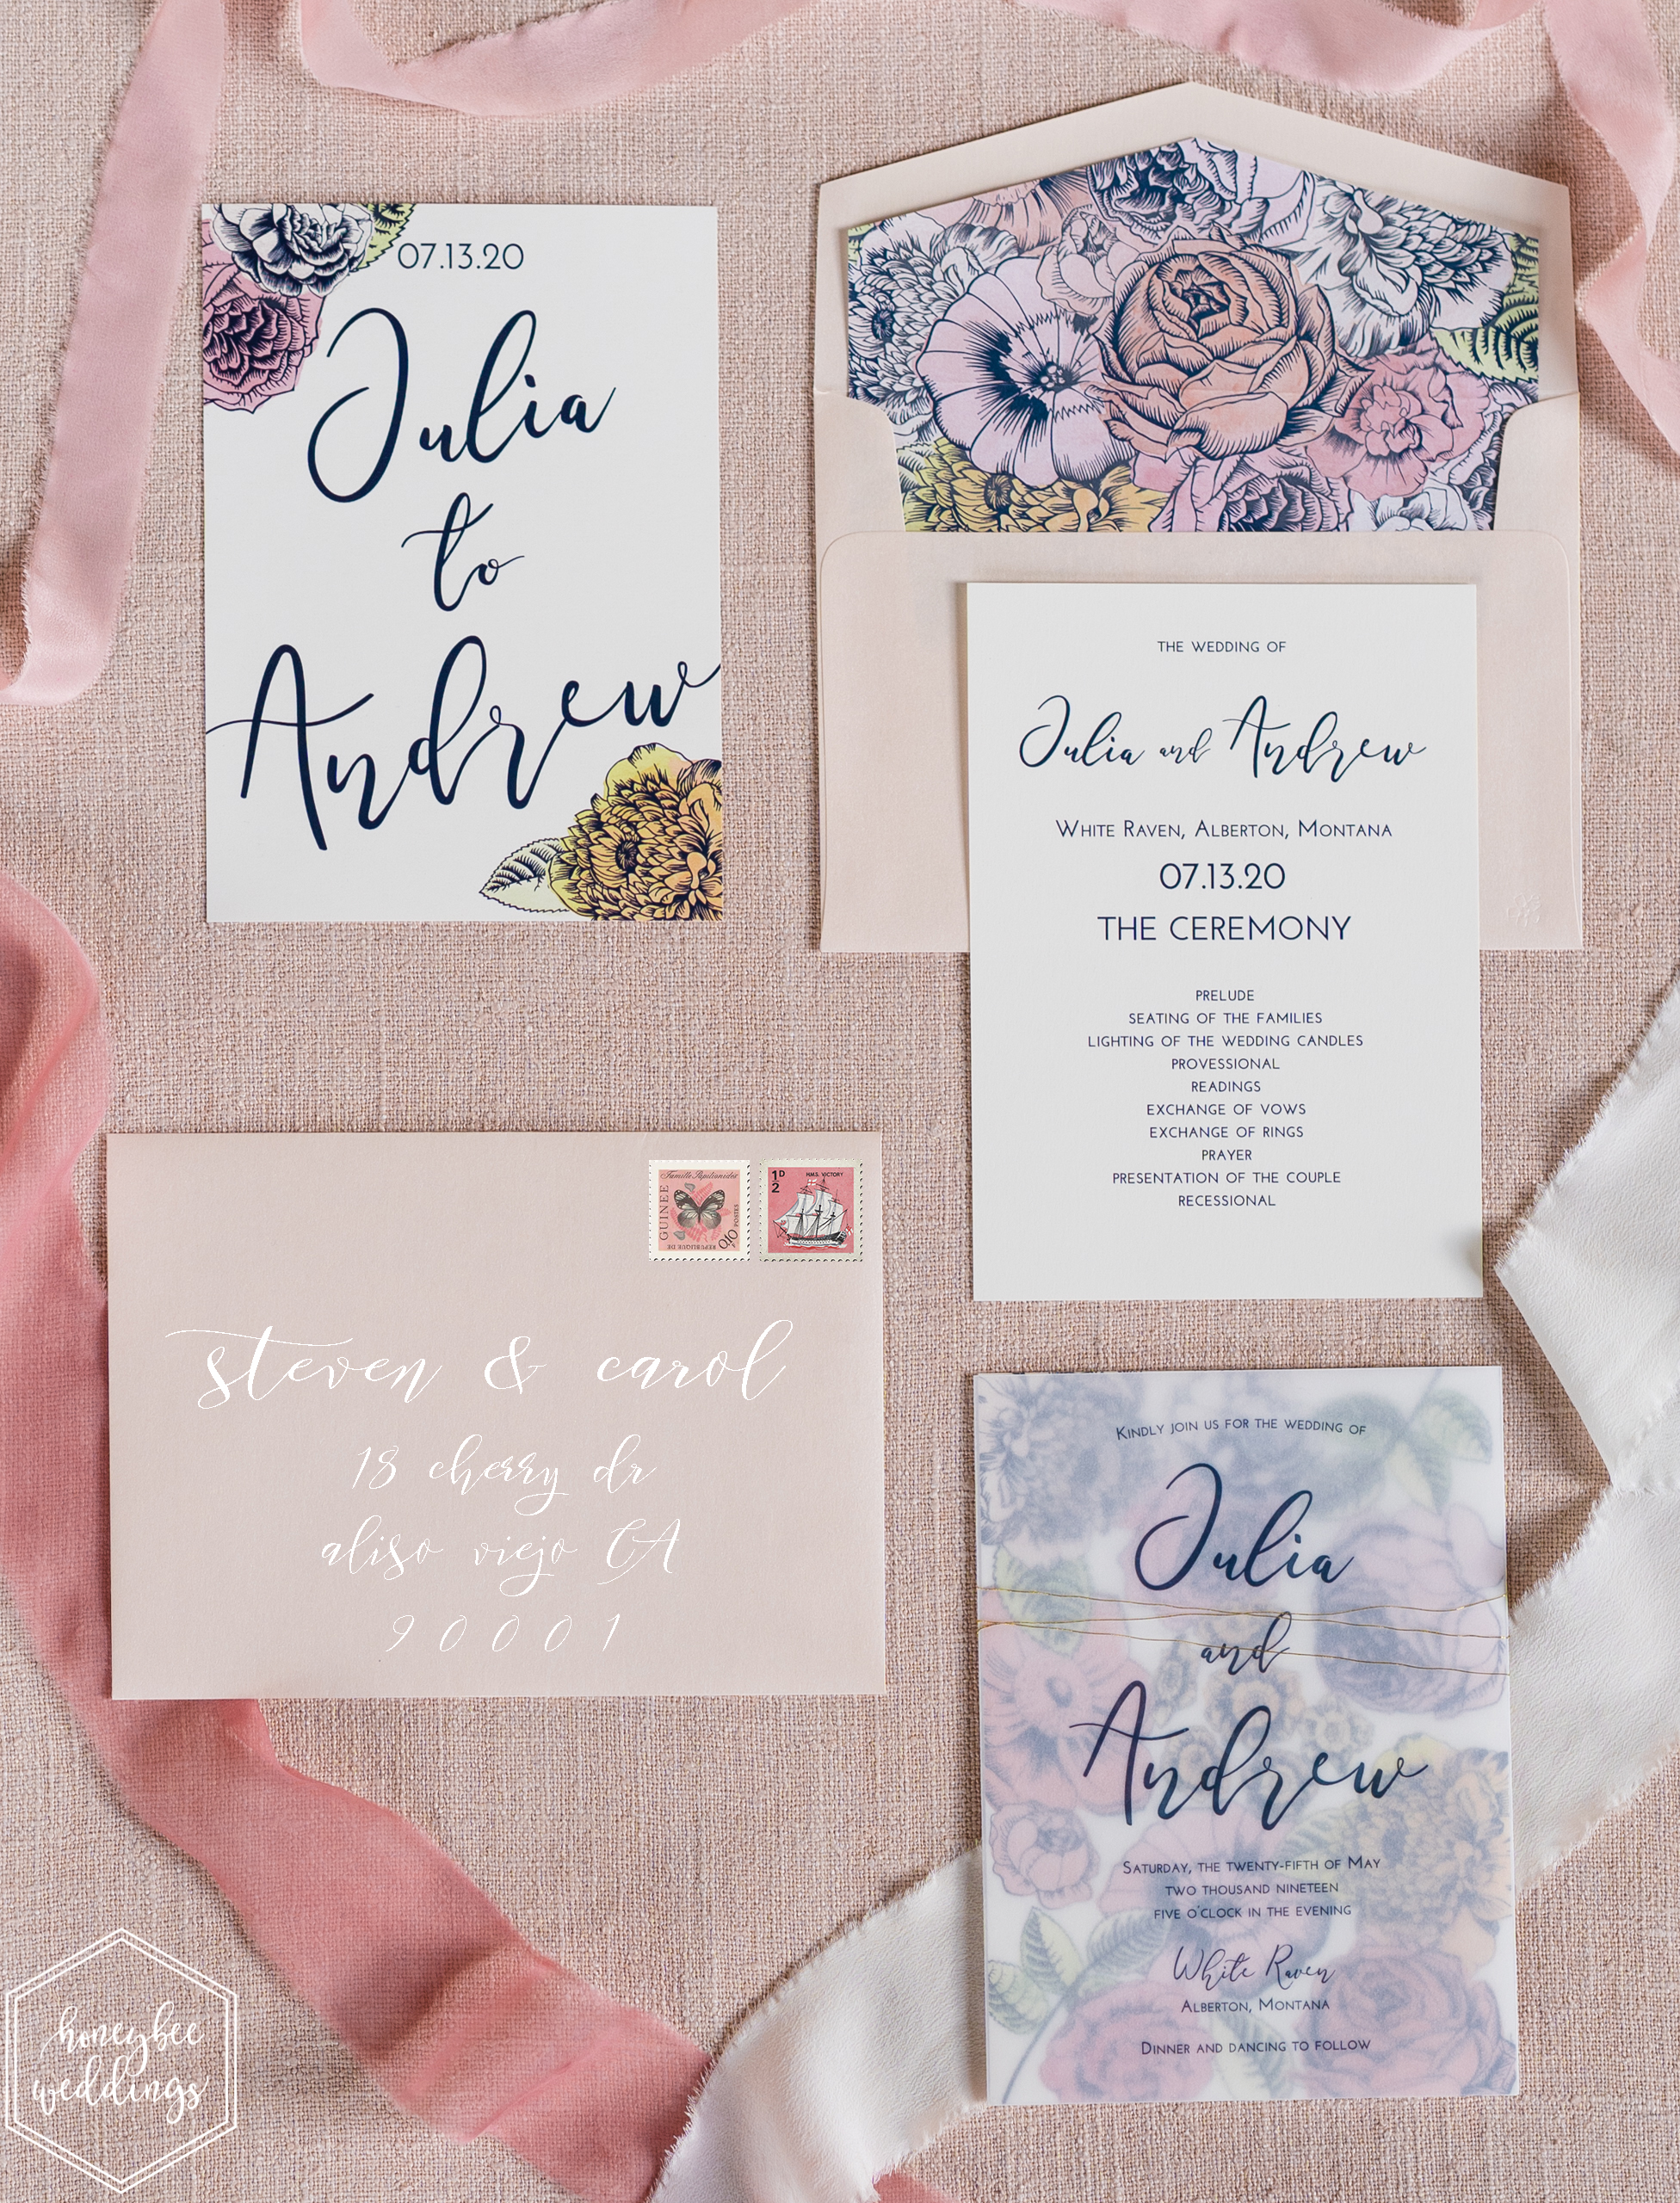 004Coral Mountain Wedding at White Raven_Honeybee Weddings_May 23, 2019-7.jpg